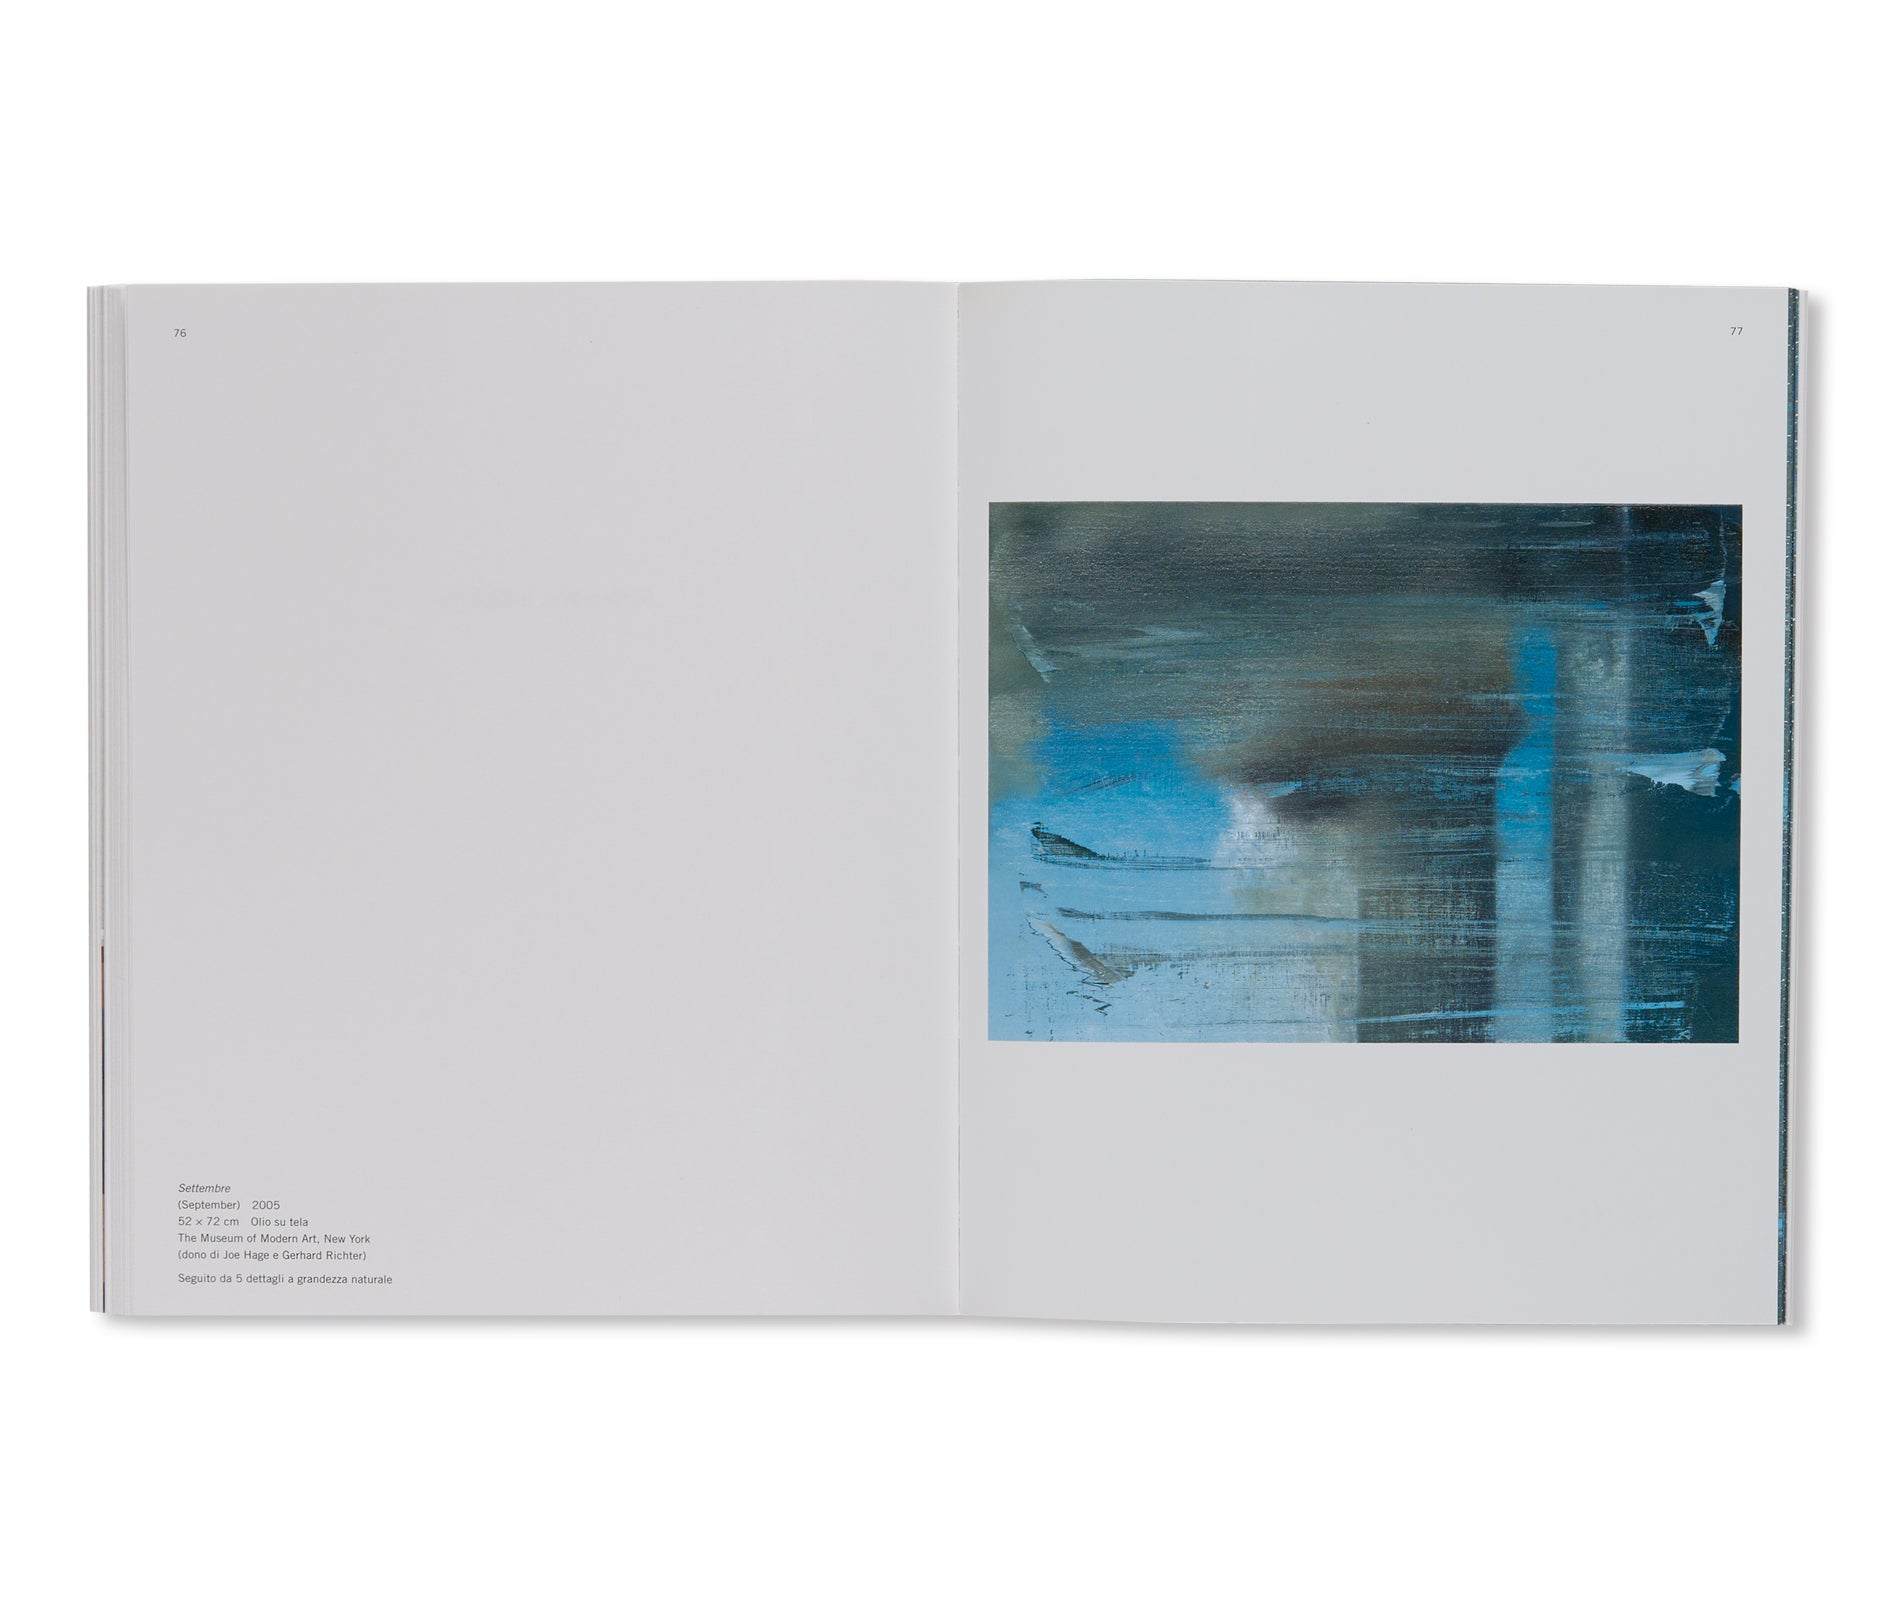 SETTEMBRE / SEPTIEMBRE by Gerhard Richter [ITALIAN EDITION]